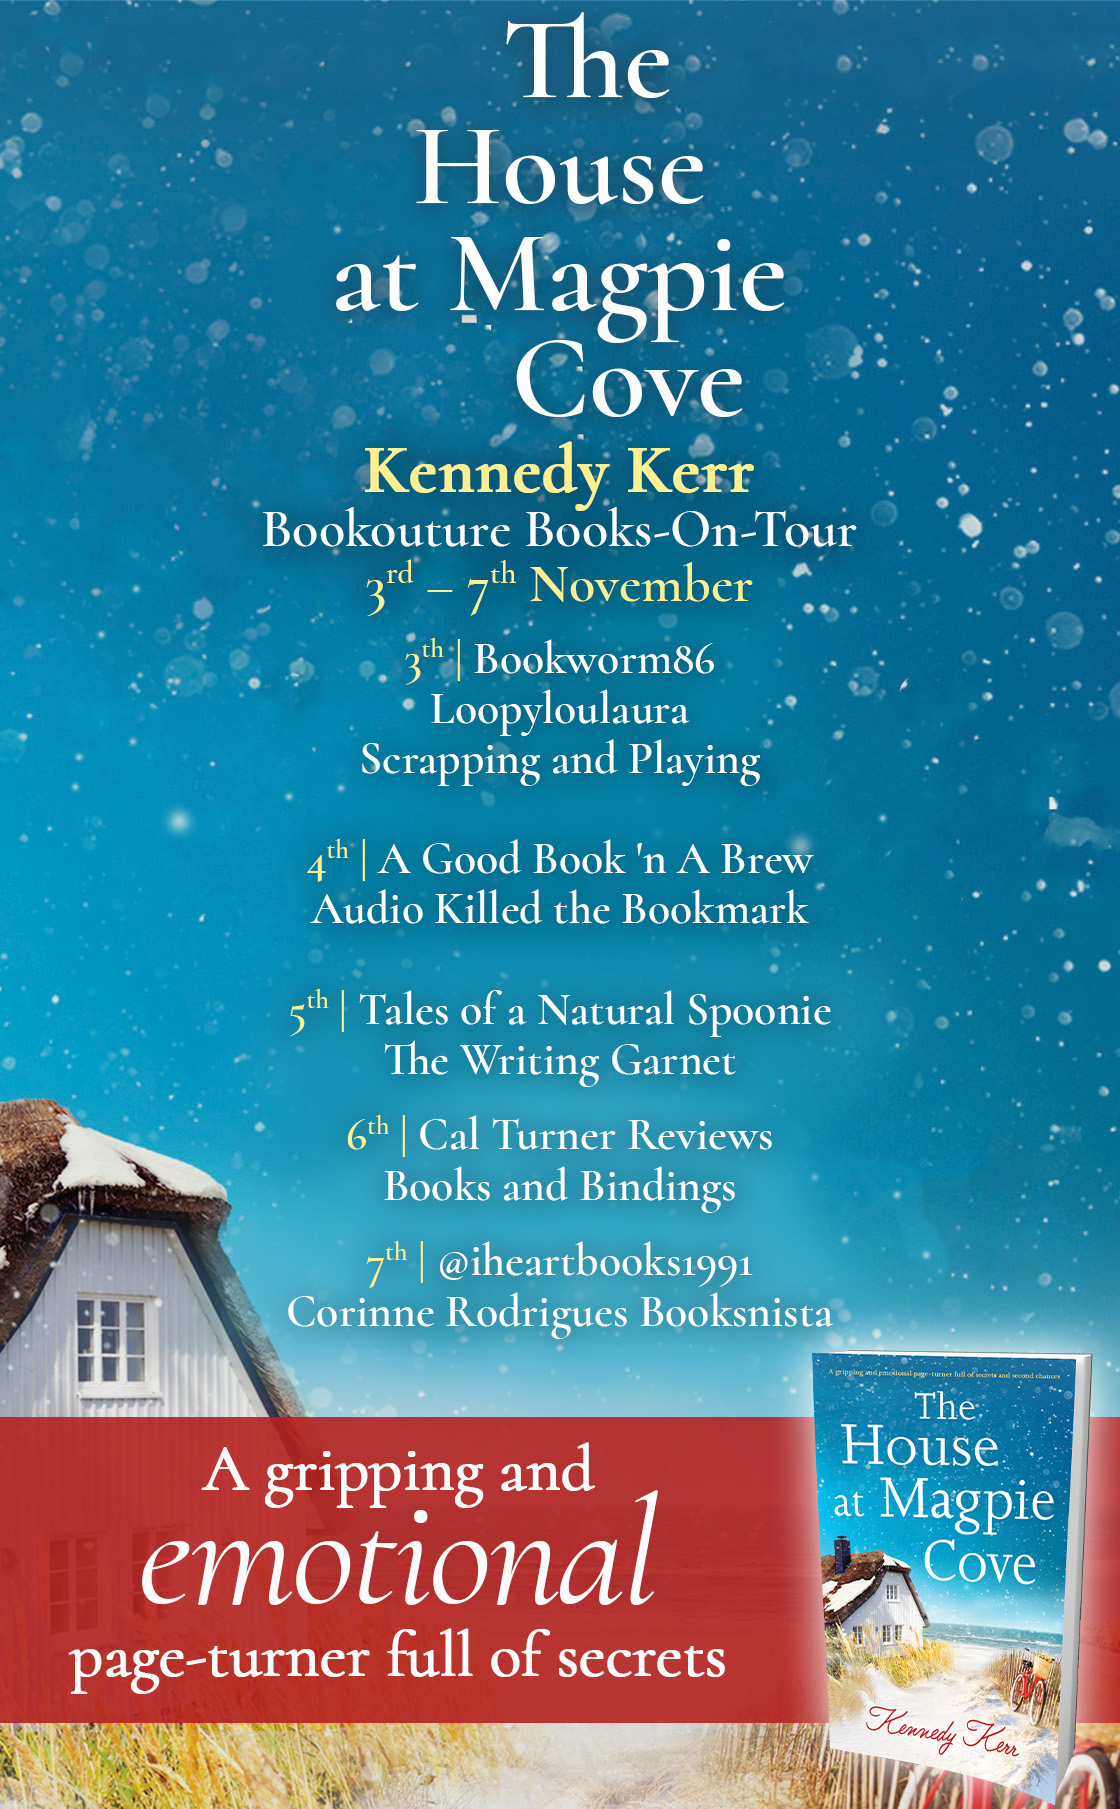 The House at Magpie Cove blog tour banner